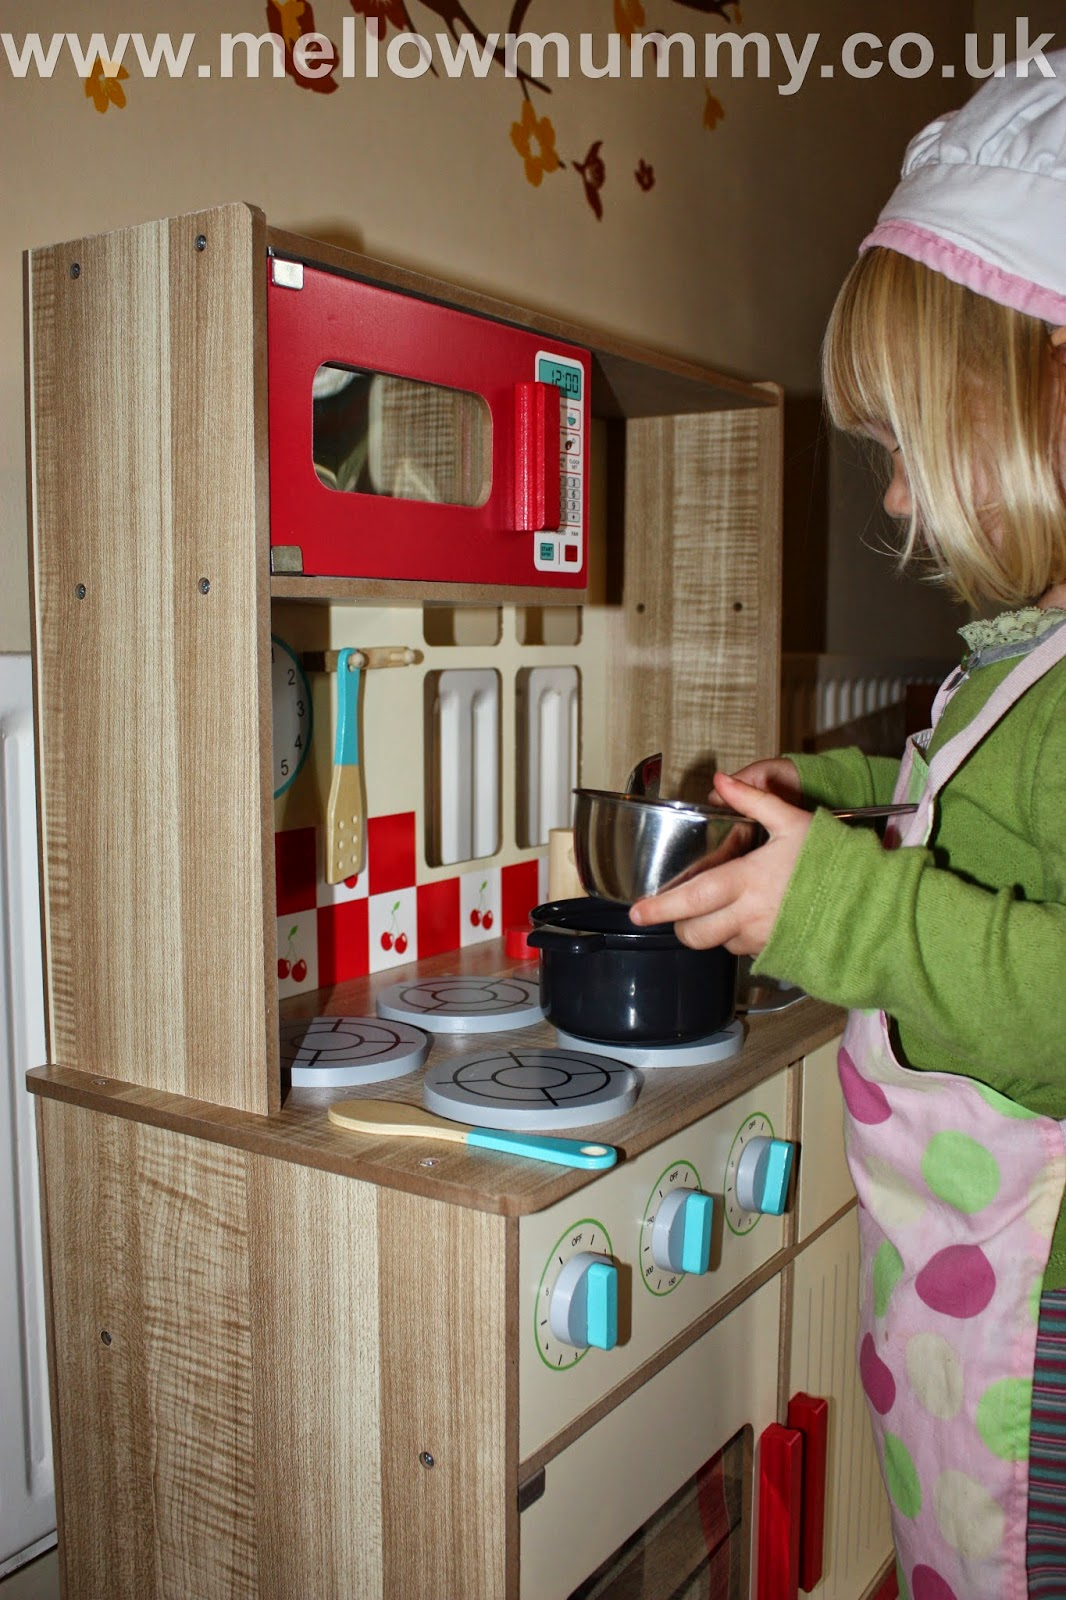 mellow mummy asda george home wooden toys a wooden. Black Bedroom Furniture Sets. Home Design Ideas